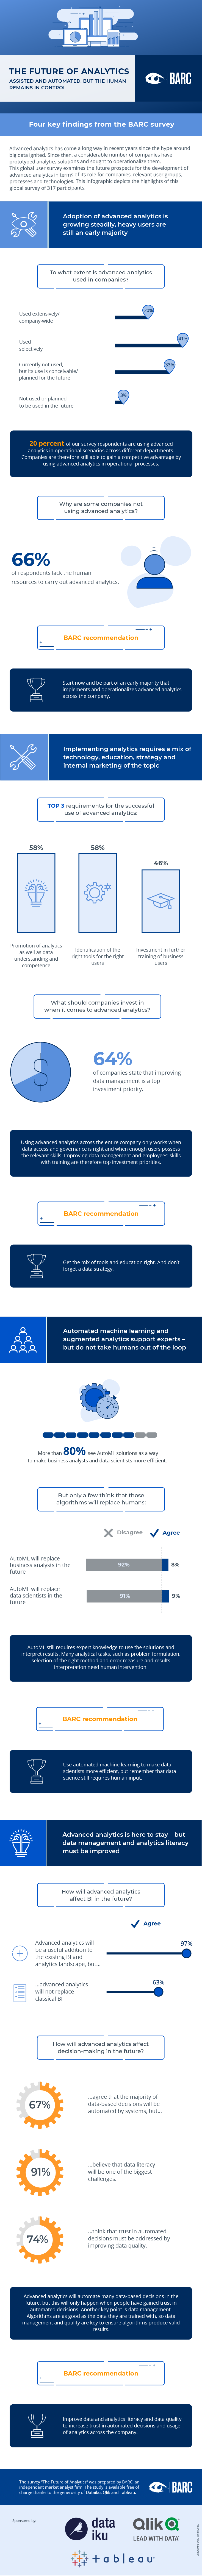 """BARC's """"The Future of Analytics"""" Infographic"""